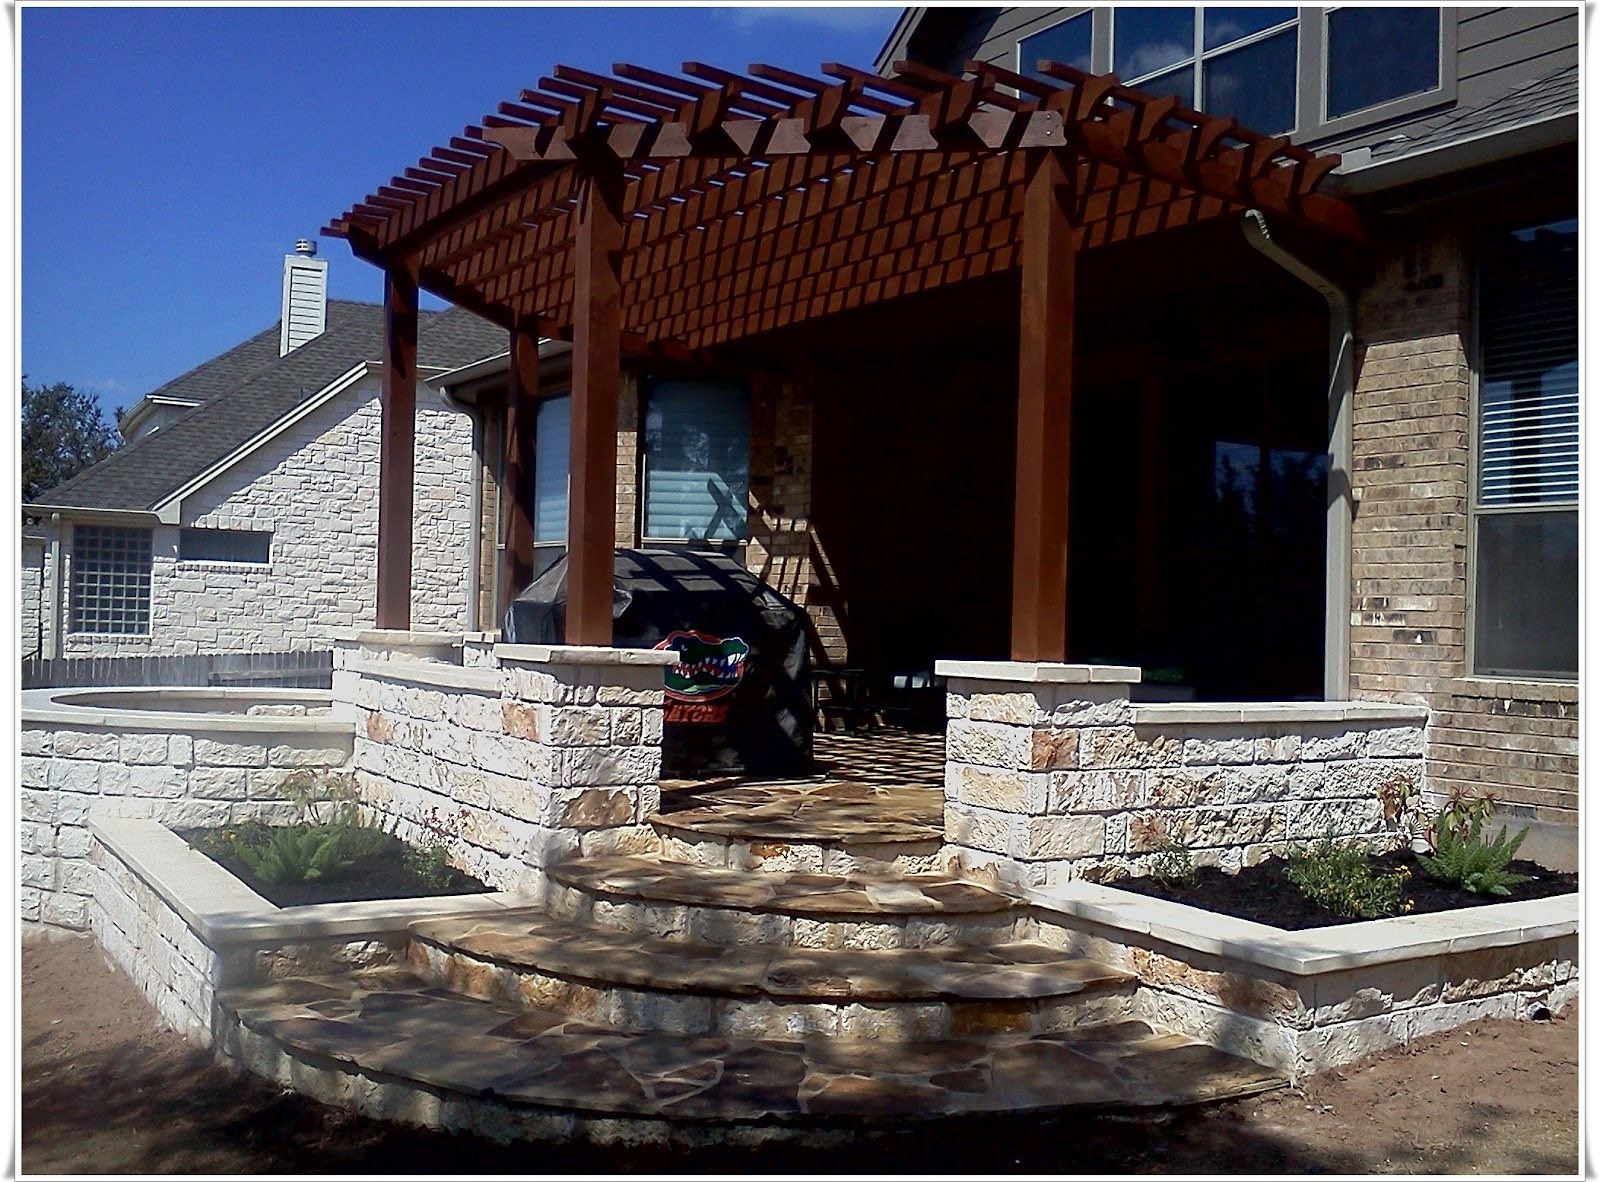 Patio Stone Austin - Home Design Inspiration, Ideas and Pictures